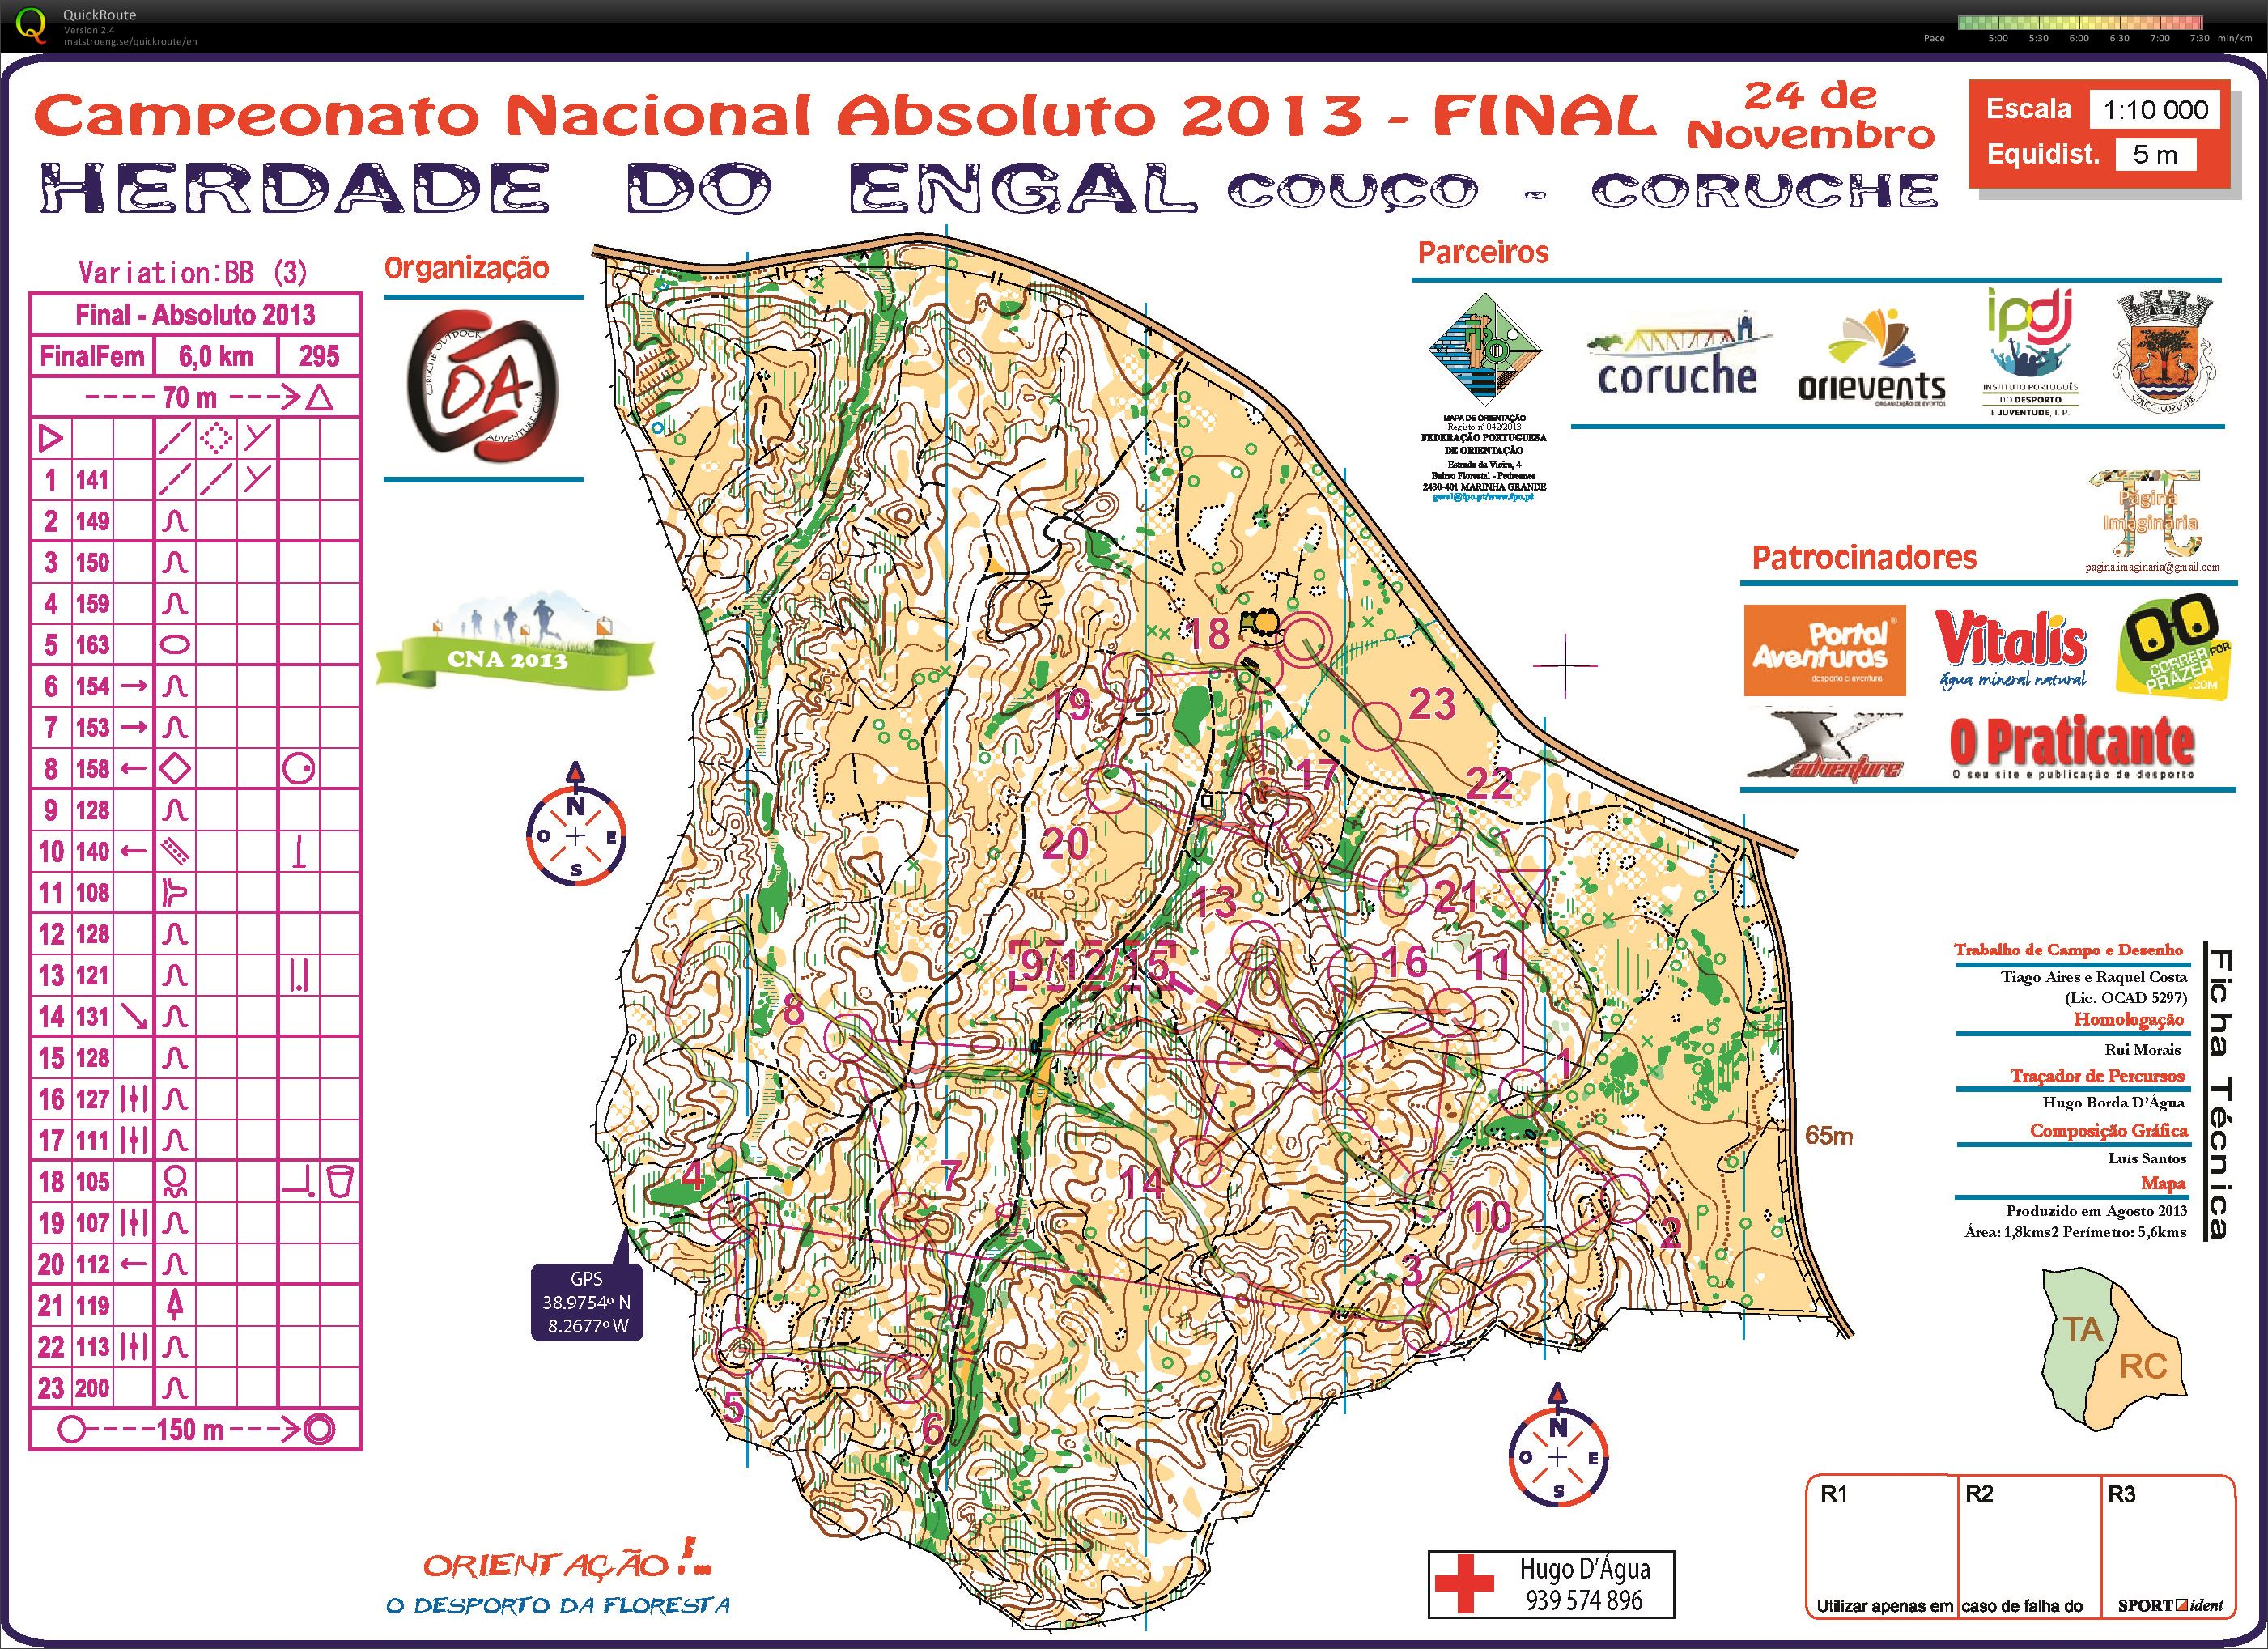 Campeonato Nacional Absoluto - final (25-11-2013)